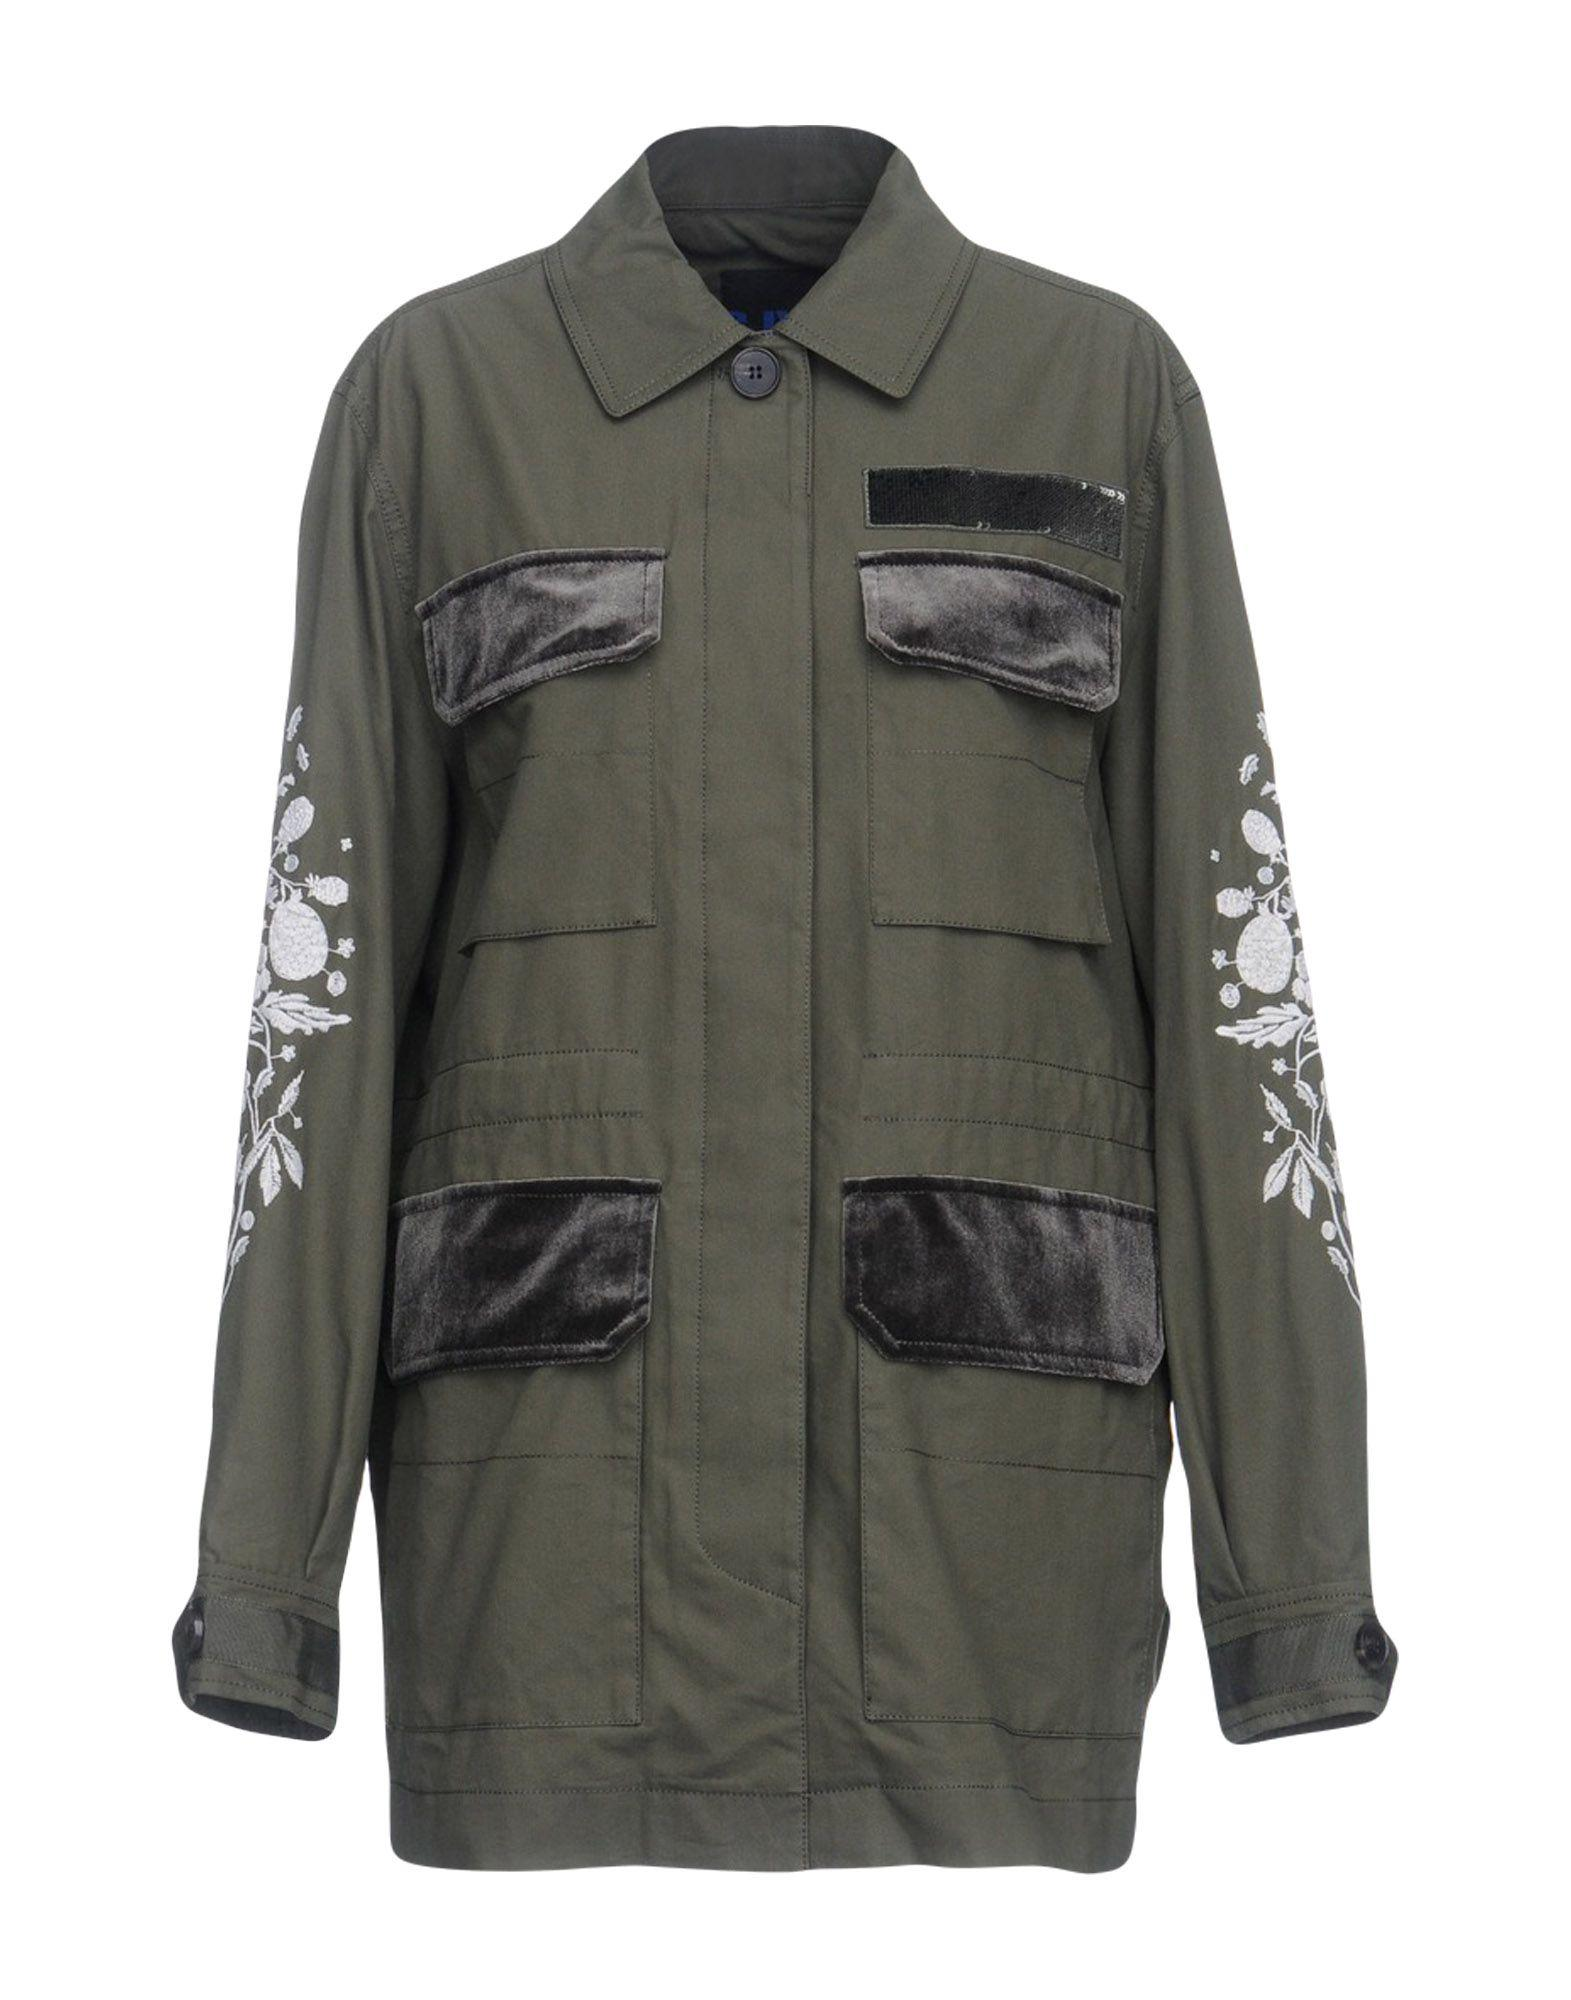 Sjyp Jacket In Military Green